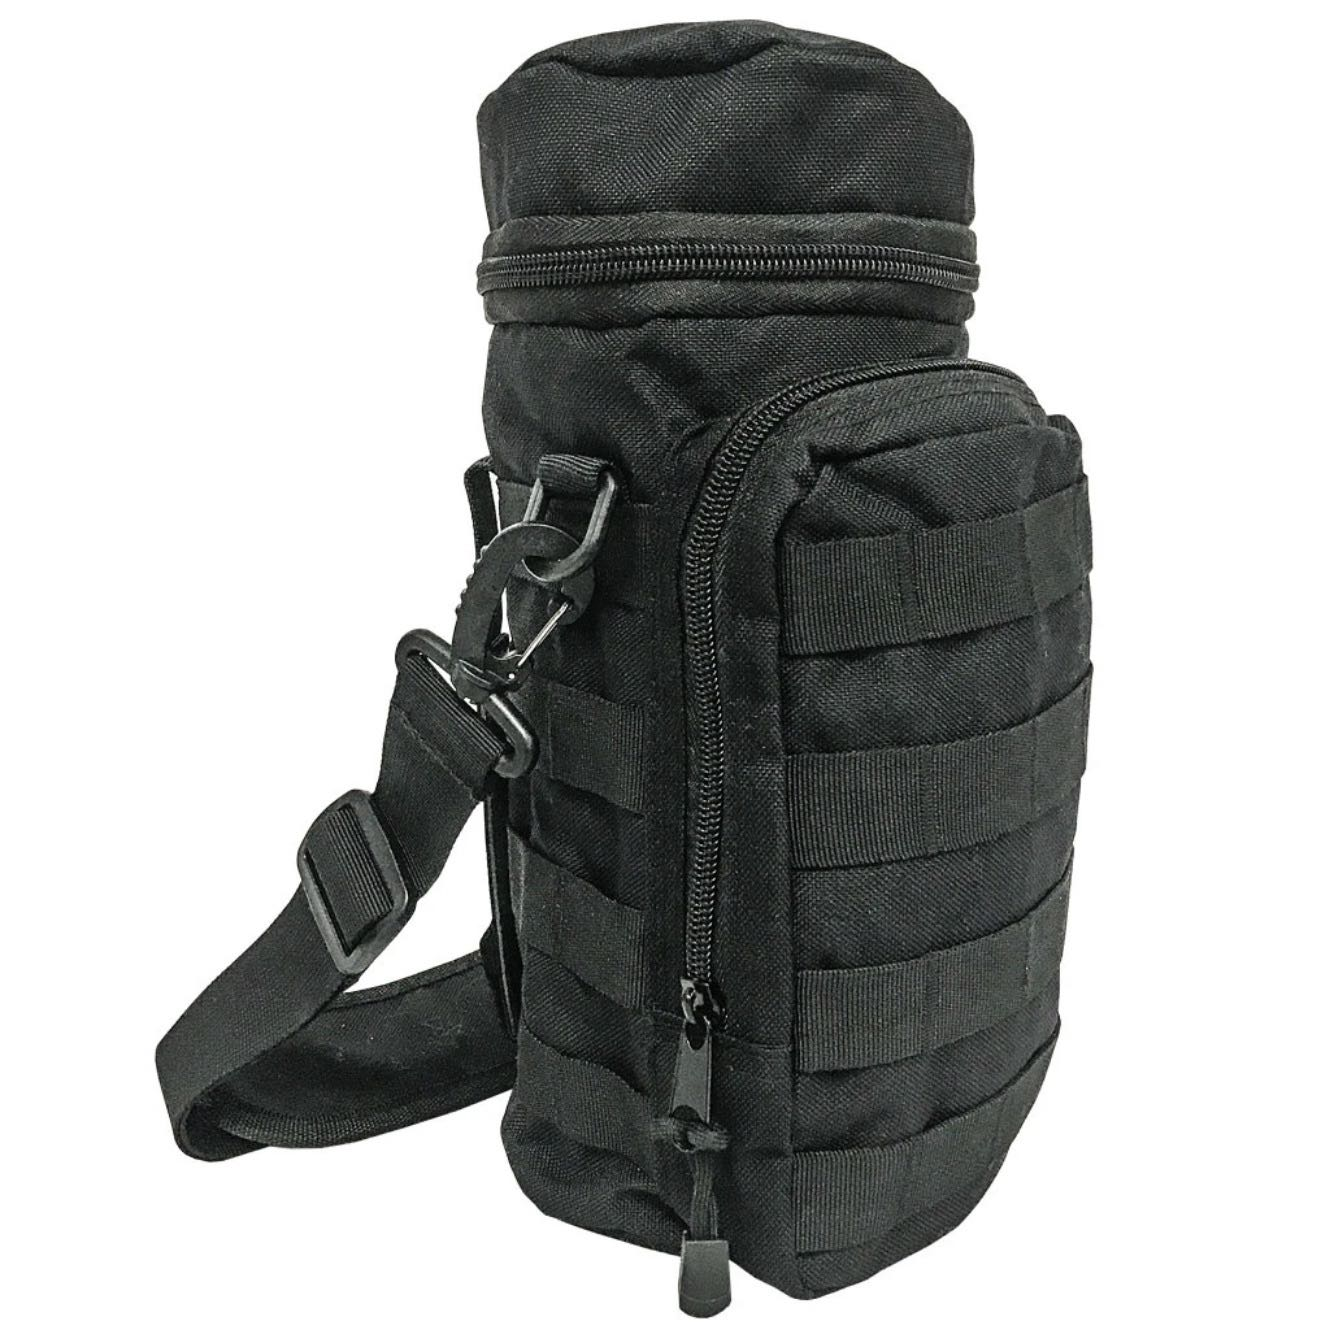 GEN 3 WATER BOTTLE / UTILITY BAG, BLACK - PATHFINDER